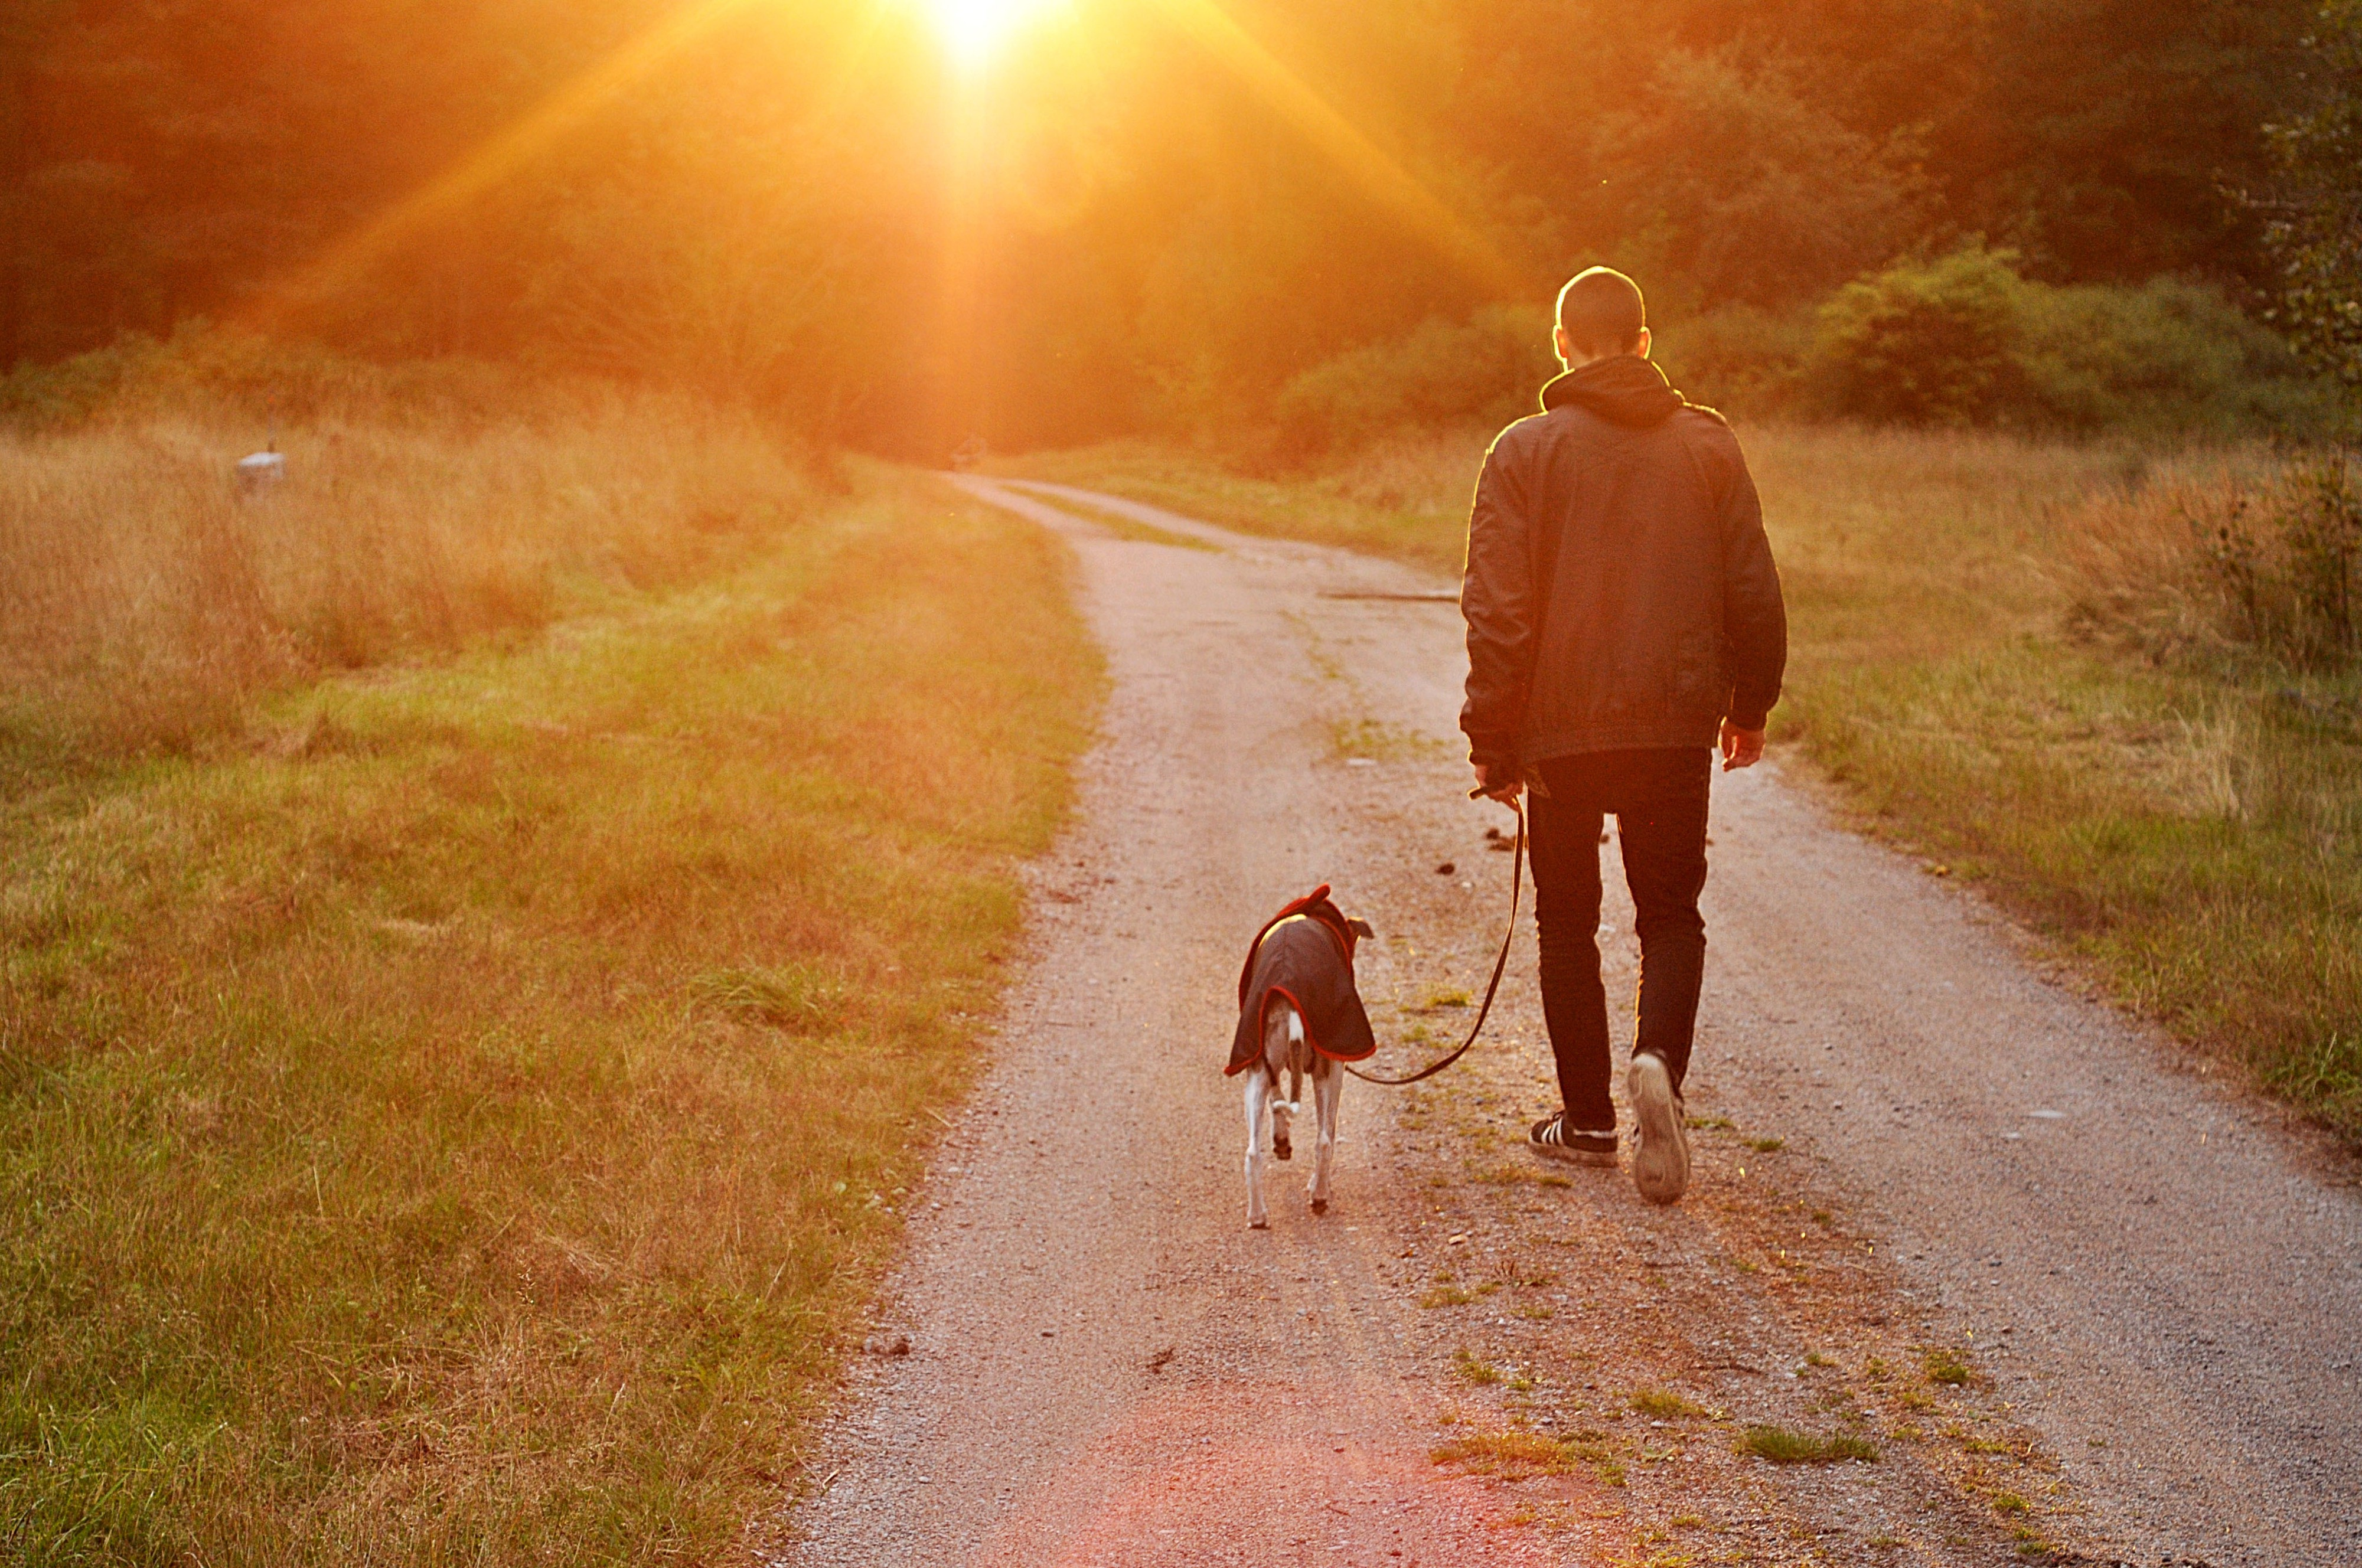 A picture of myself and one of my dogs, a rescue by the way, walking into a sunset.